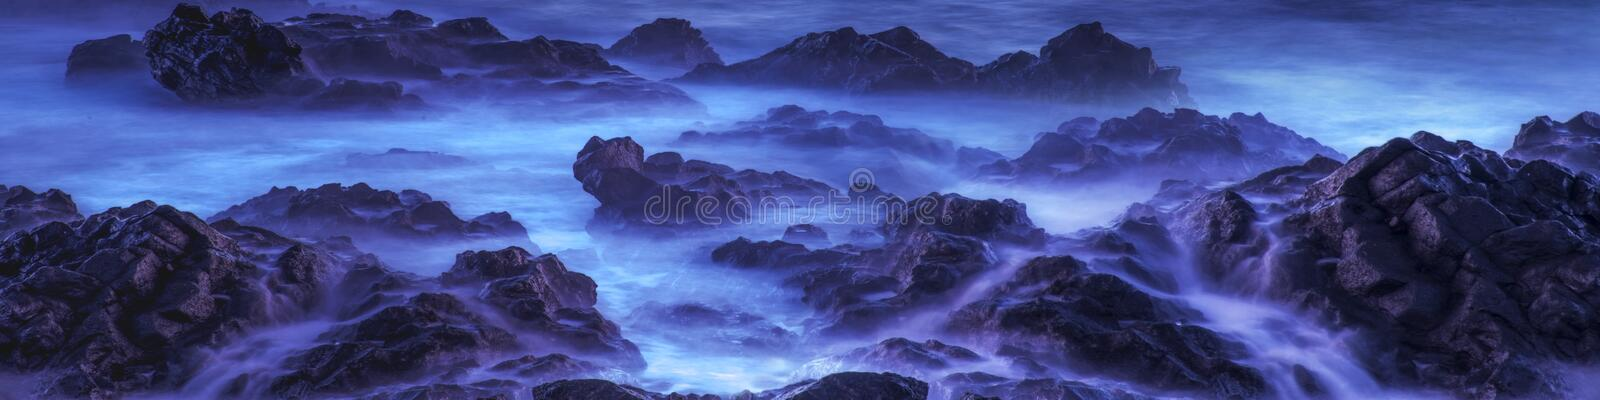 Water with rock nature photo with long exposure fog effect.Panorama or banner abstract color ocean background royalty free stock photo